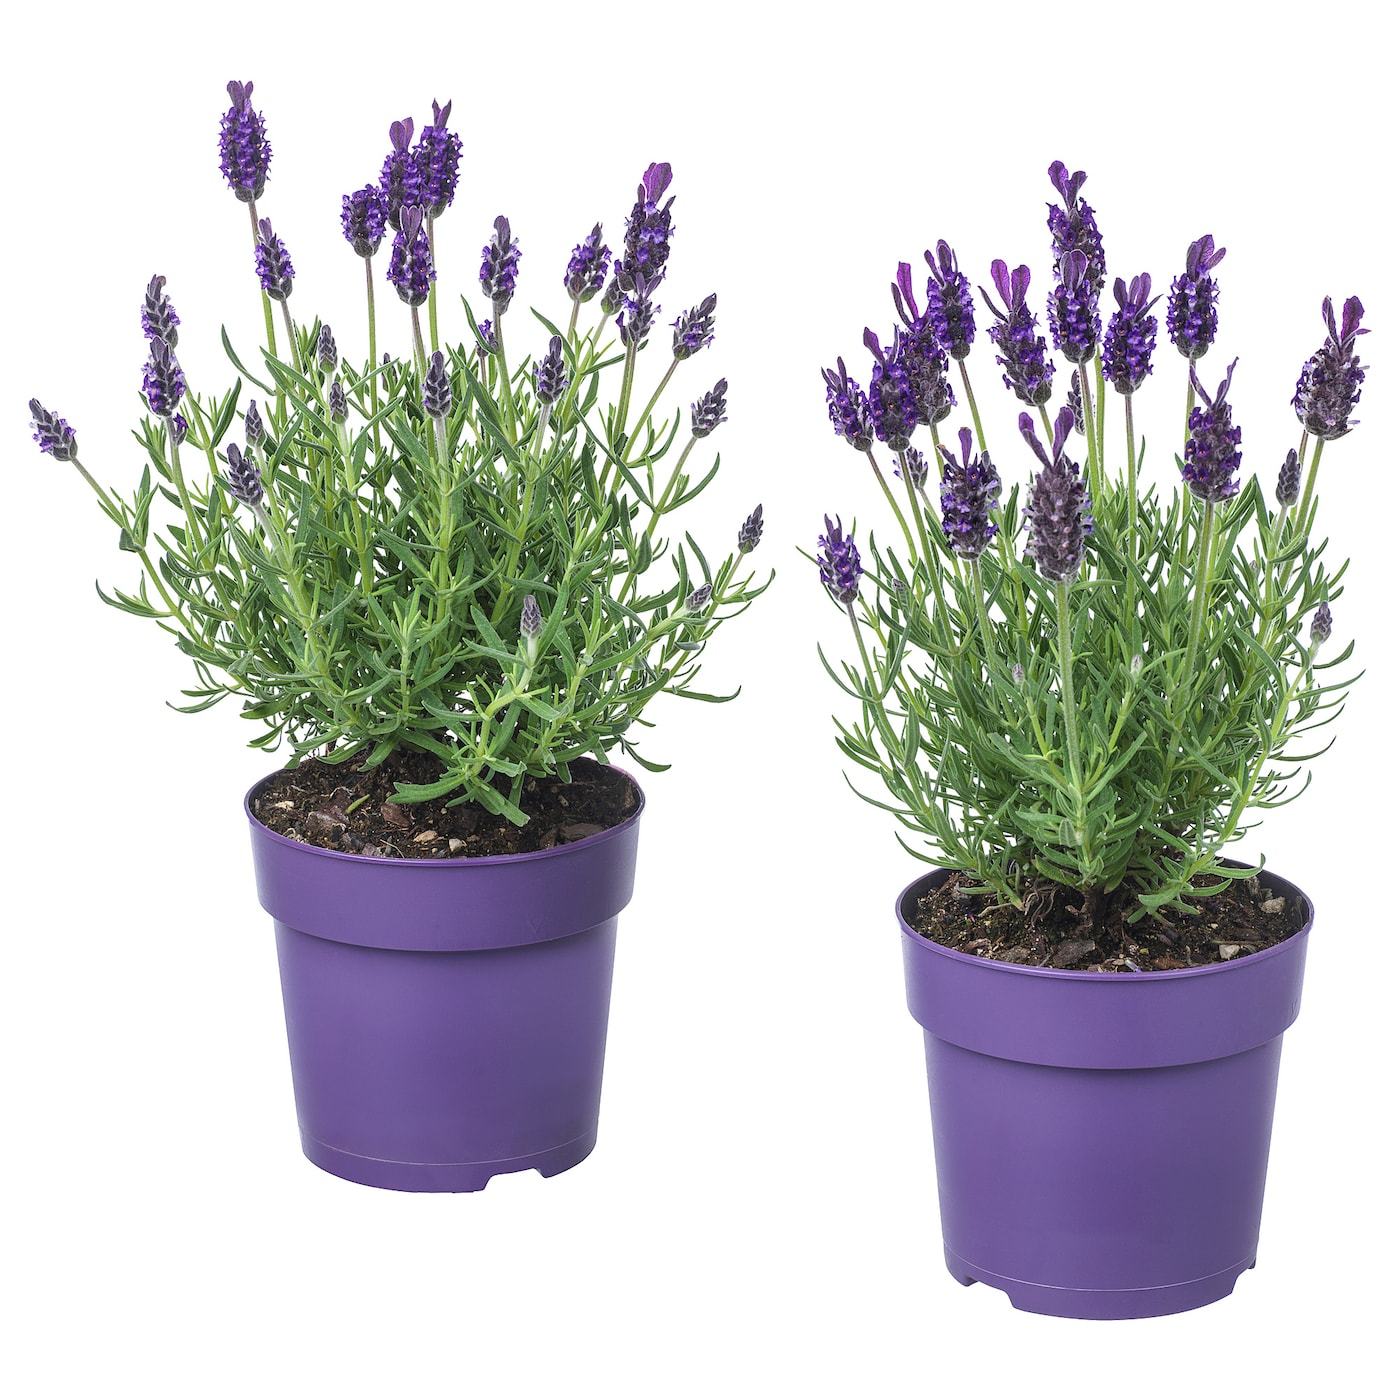 lavandula plante en pot diverses esp ces 12 cm ikea. Black Bedroom Furniture Sets. Home Design Ideas